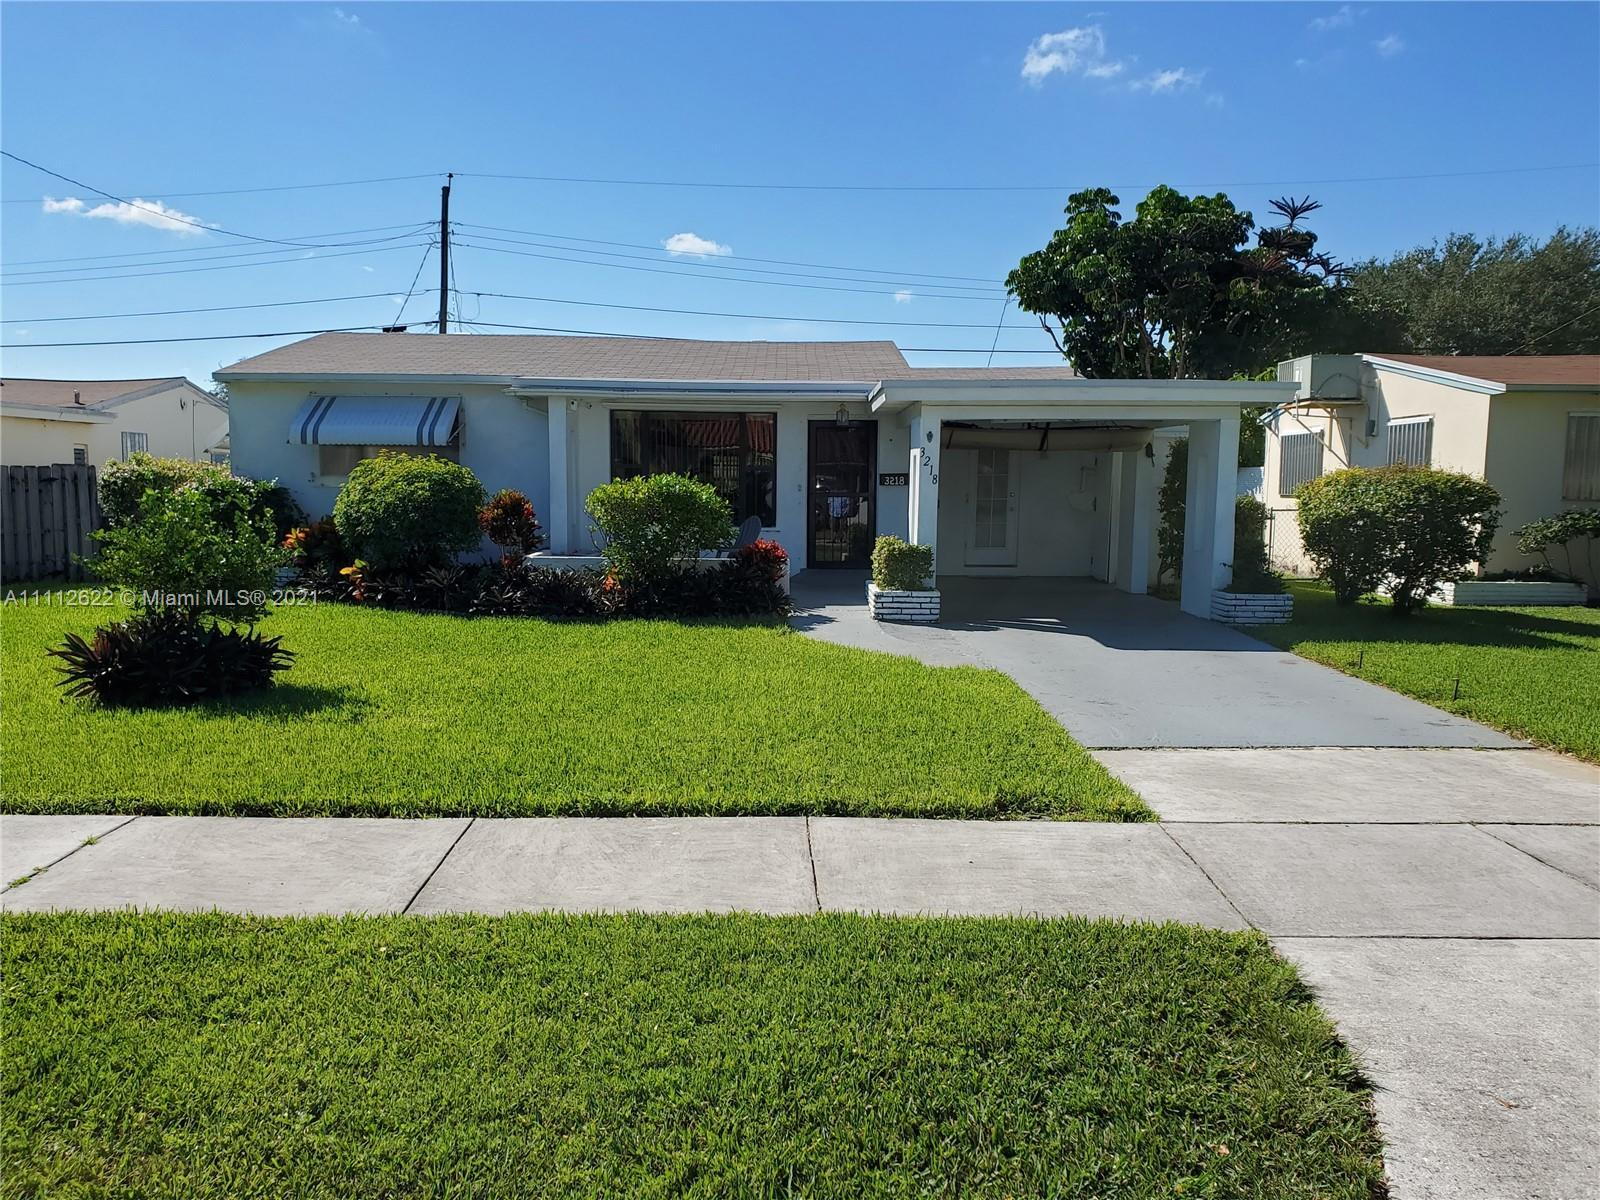 Amazing location in a well established neighborhood. This is a 3 bedroom 2 bathroom spacious home wi